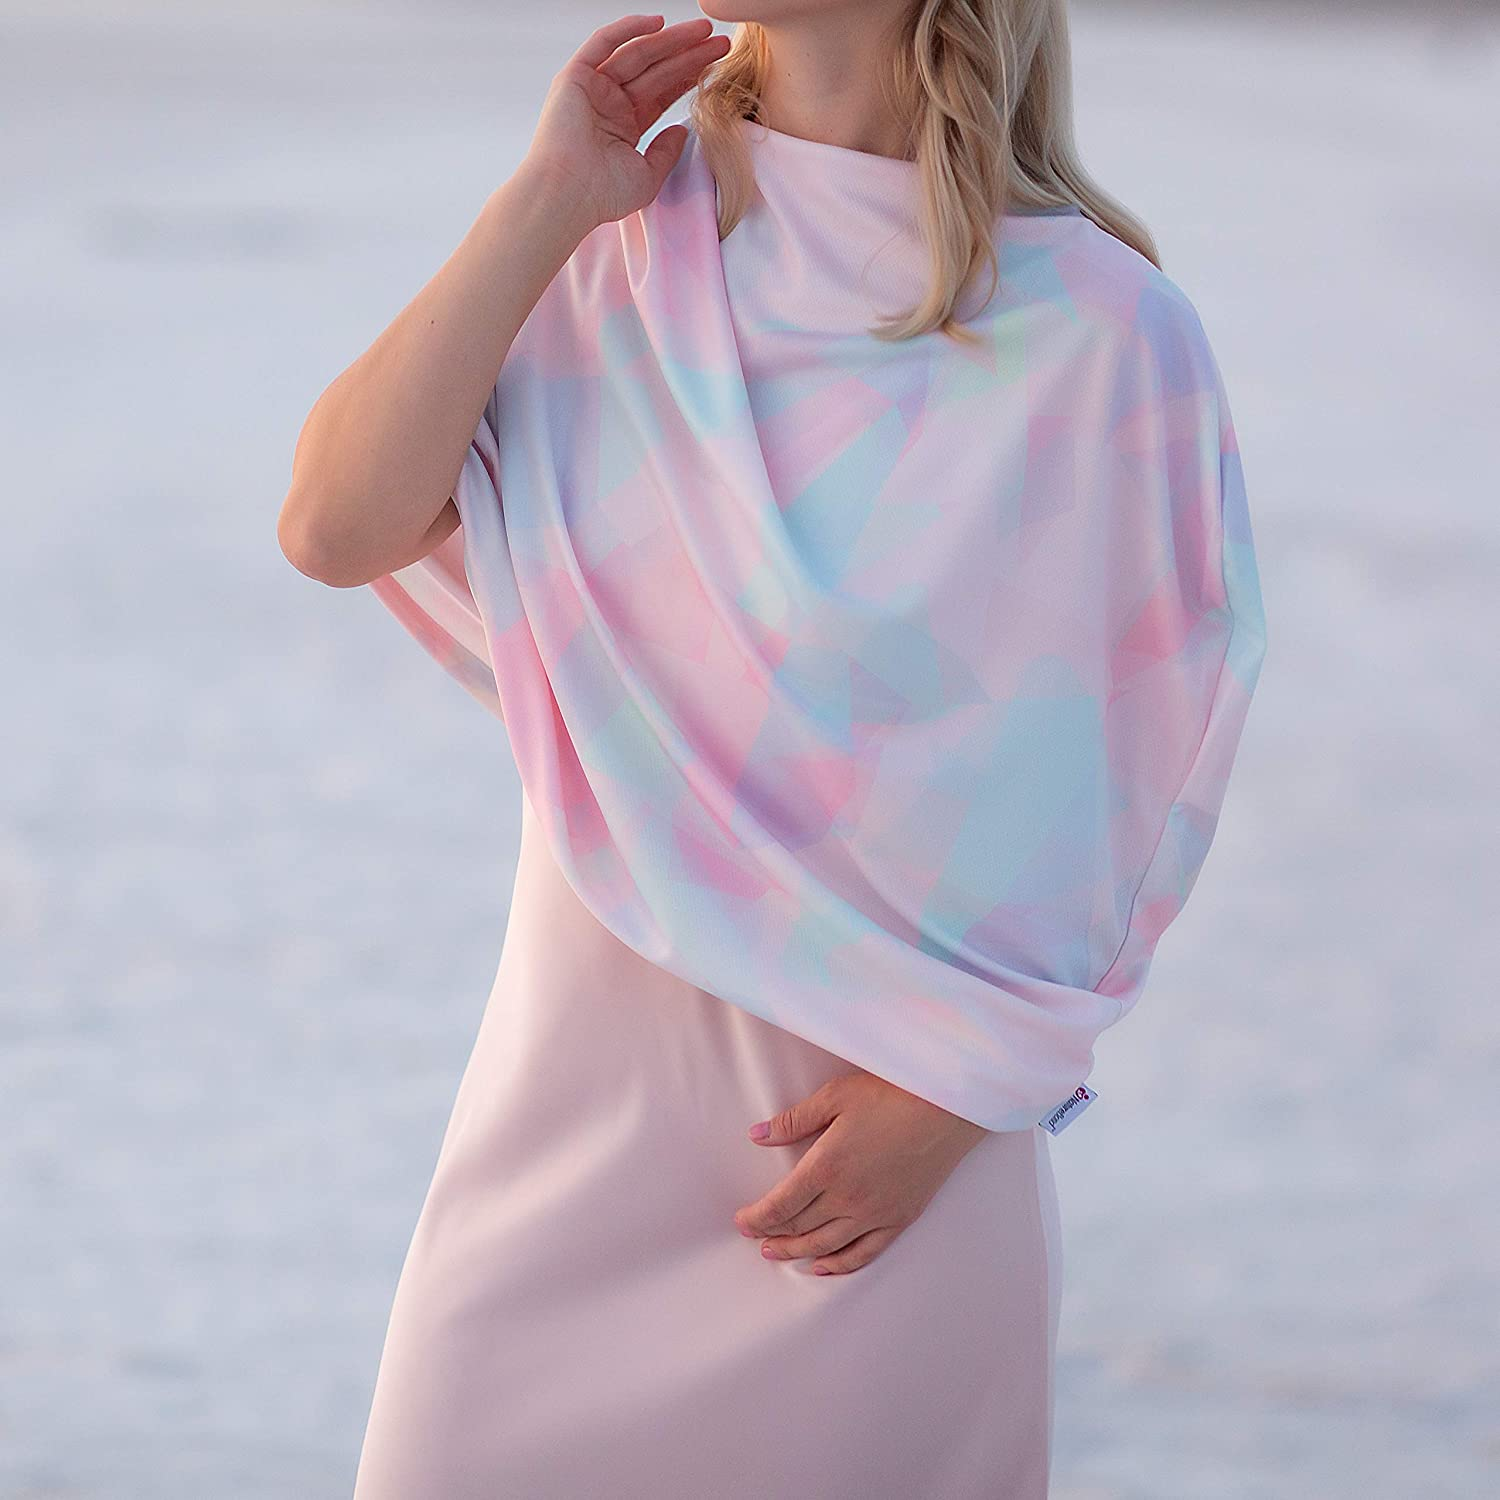 Multifunctional Comfortable NatureBond Breastfeeding Nursing Cover Essentials for Women 100/% Privacy Nursing covers for Breastfeeding That All New Moms Should Have! Stretchable Breathable